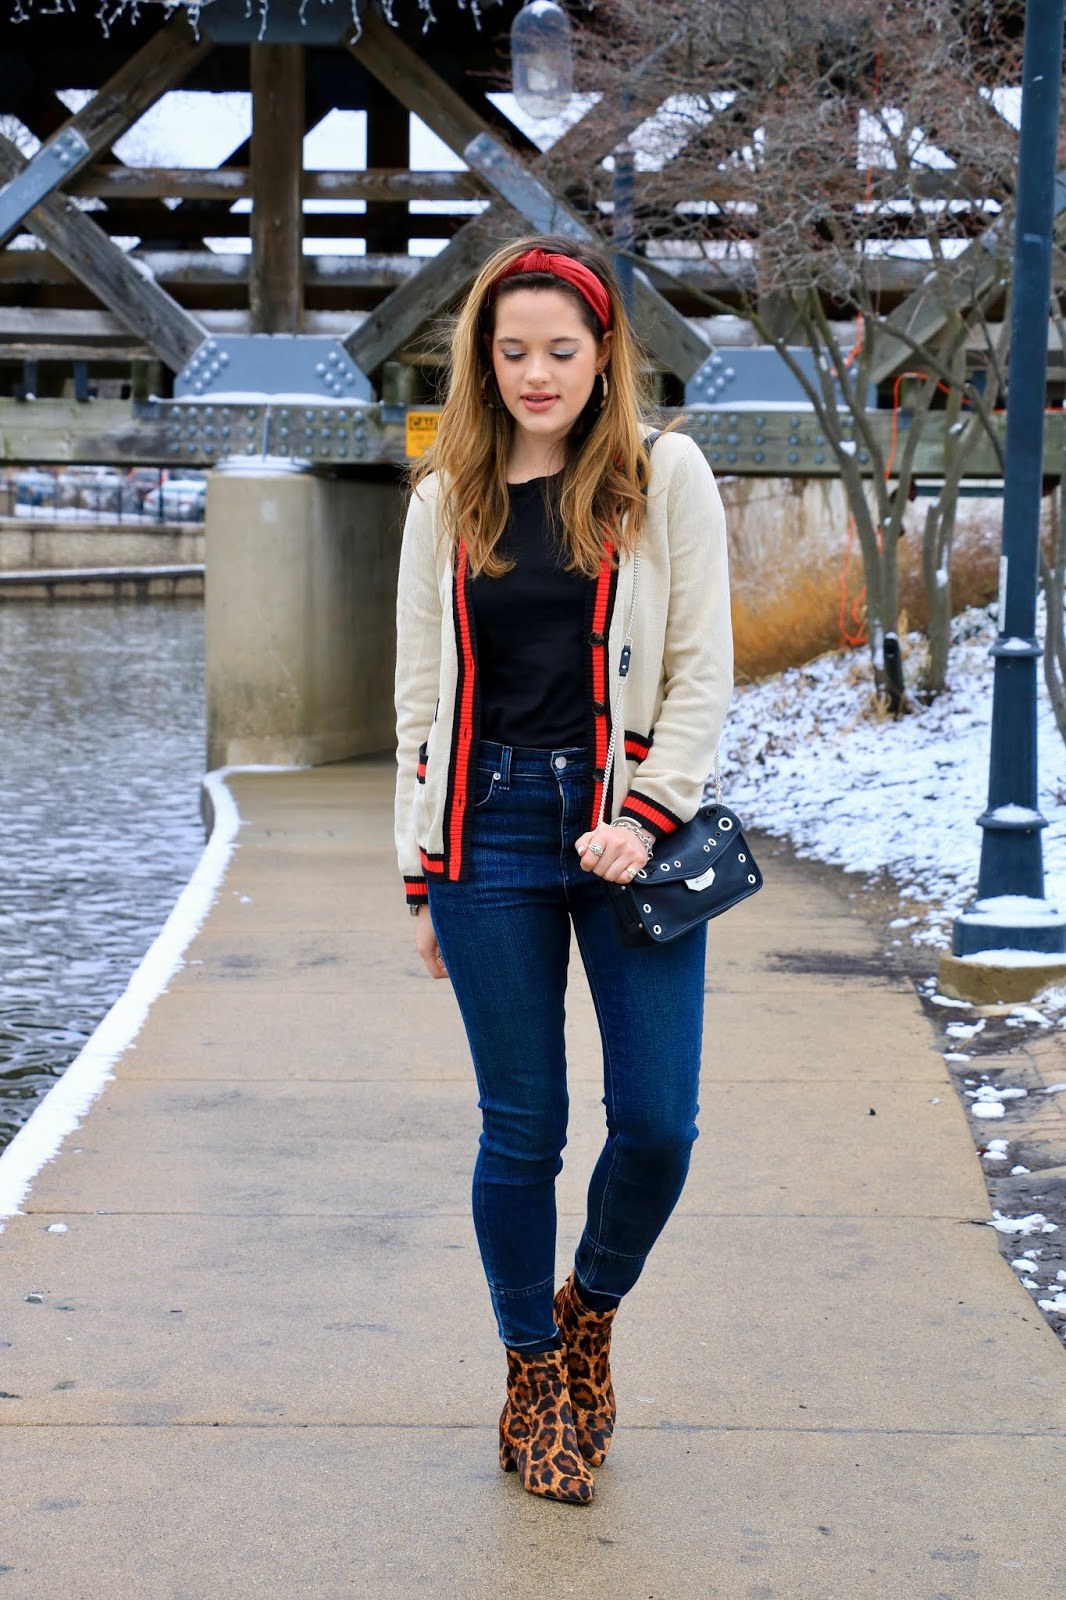 Nyc fashion blogger Kathleen Harper's varsity cardigan outfit idea